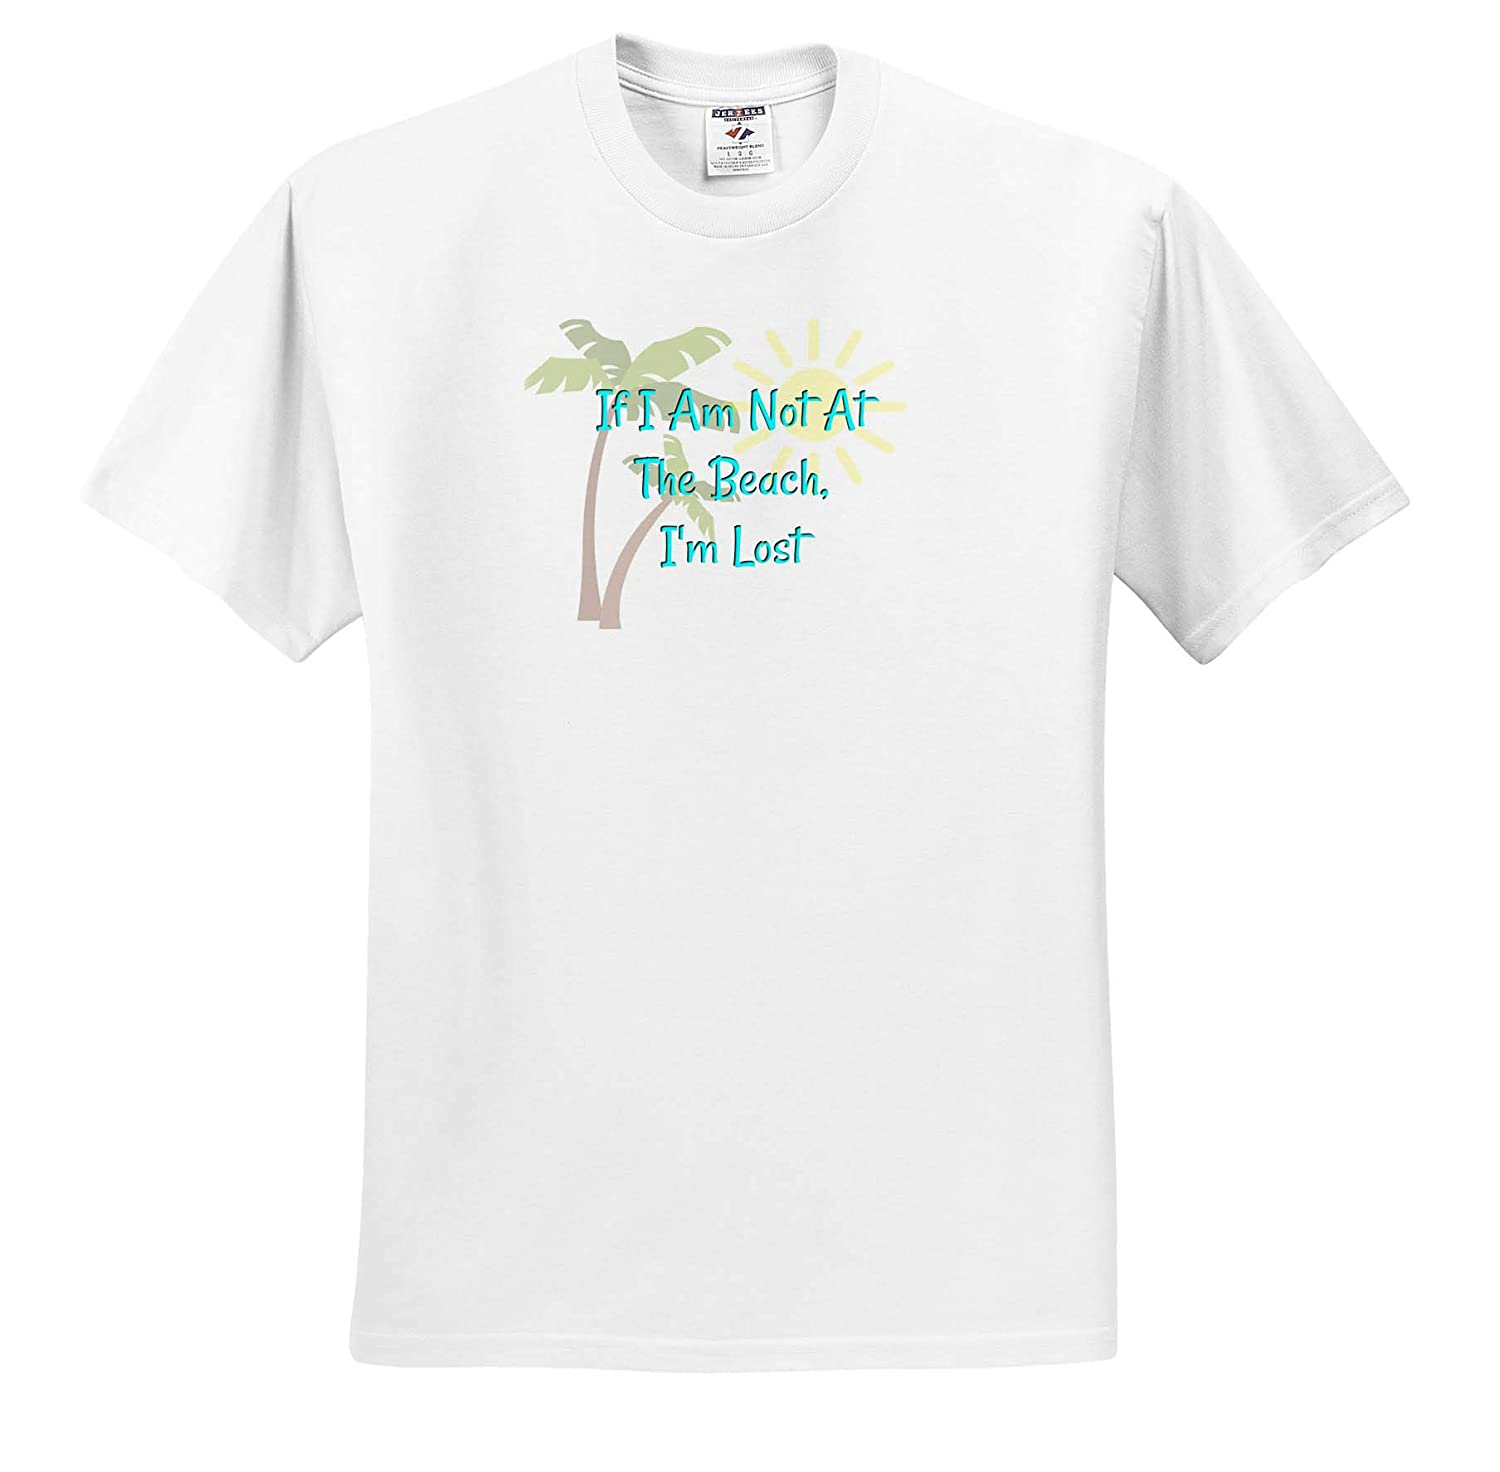 3dRose Carrie Merchant Image of If Im Not at The Beach Im Lost ts/_309862 Adult T-Shirt XL